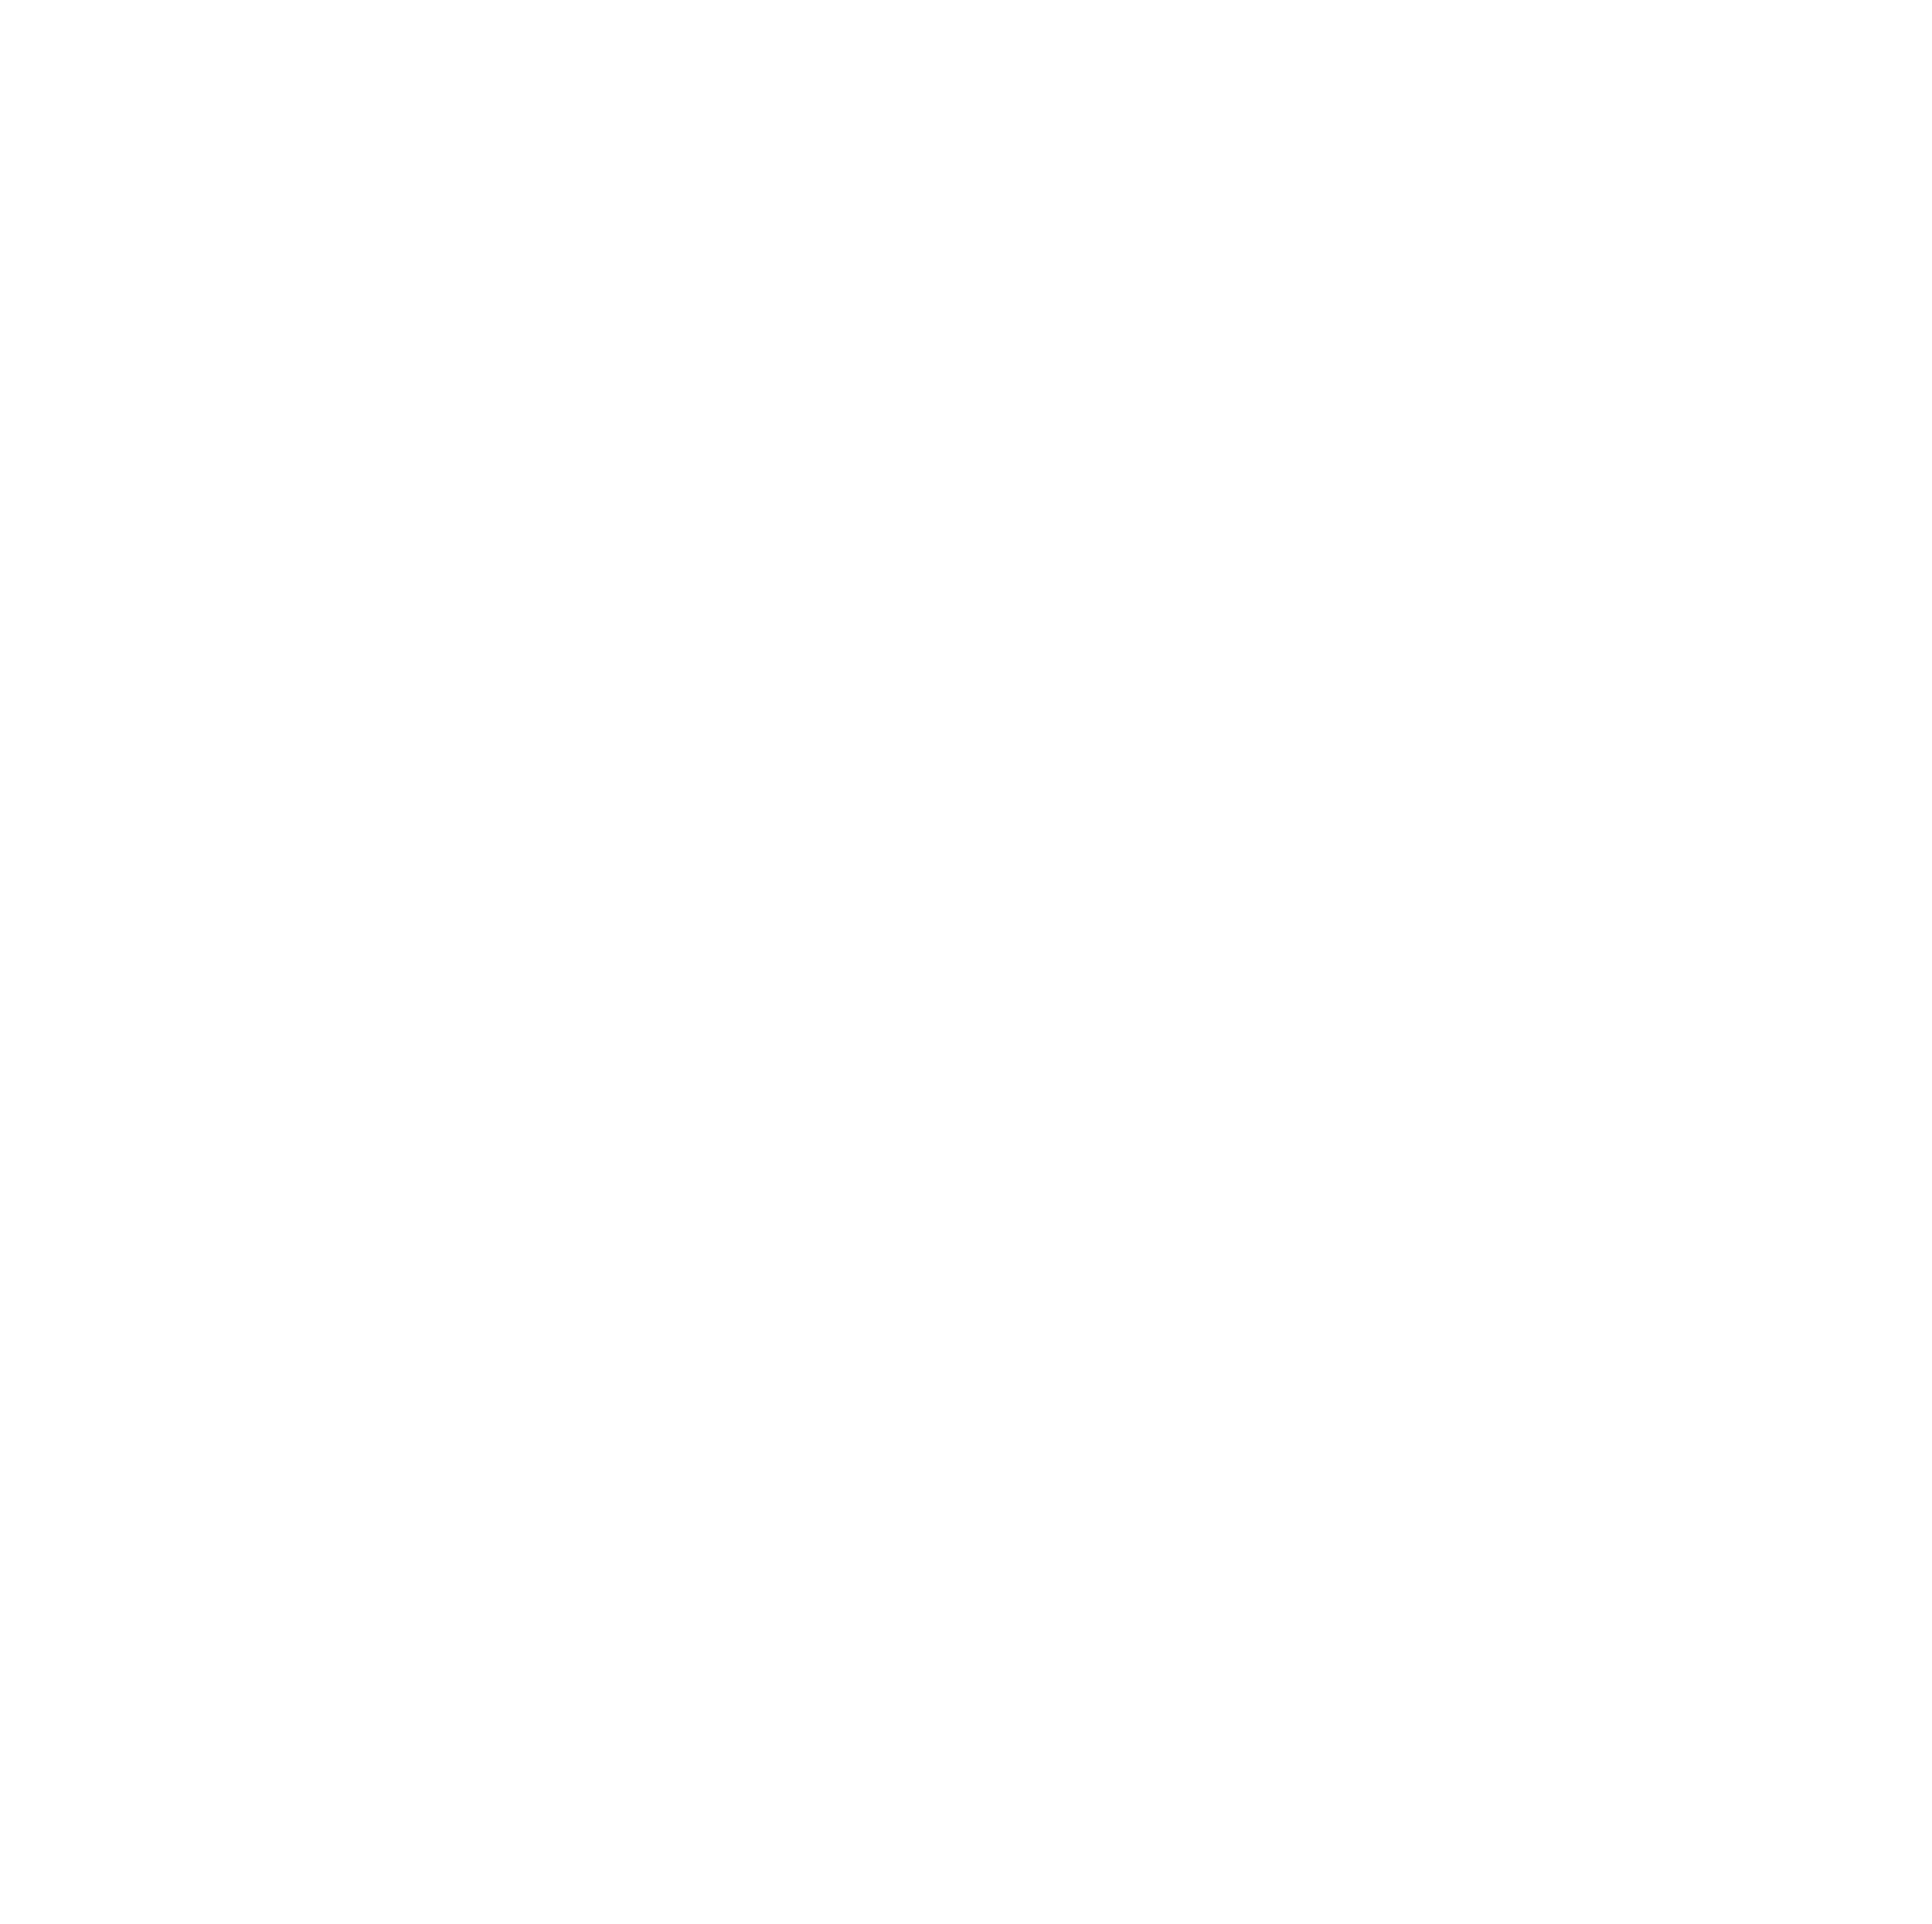 SUMMER-DRESS-CODE-06-06.png